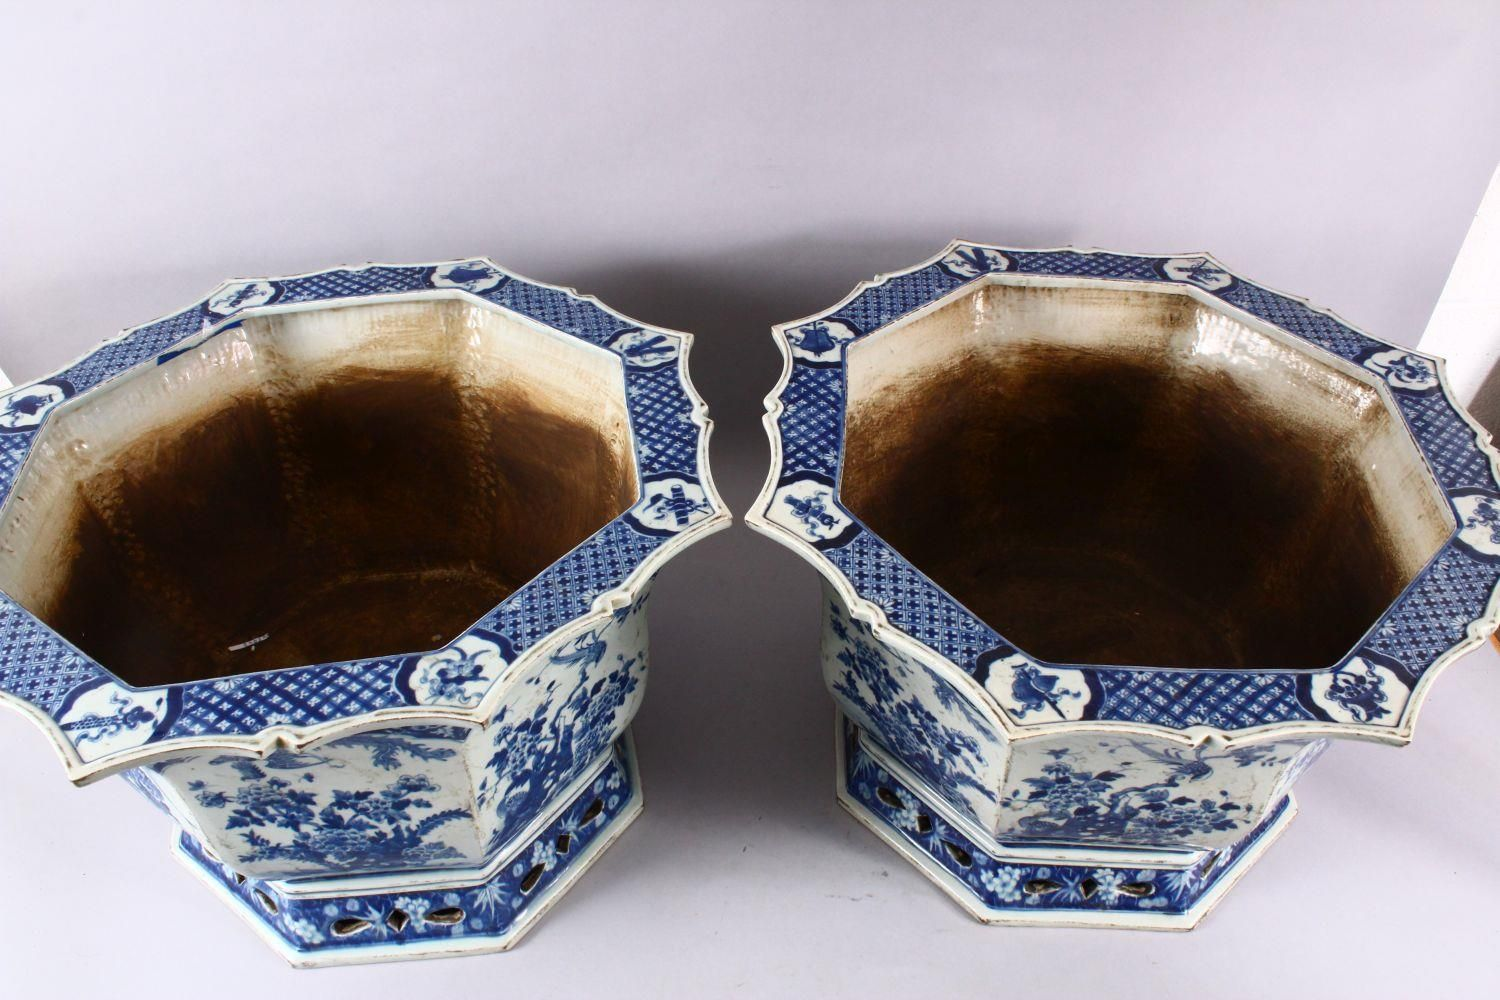 A PAIR OF LARGE CHINESE BLUE & WHITE OCTAGONAL PORCELAIN JARDINIERE / PLANTERS, decorated with - Image 8 of 8